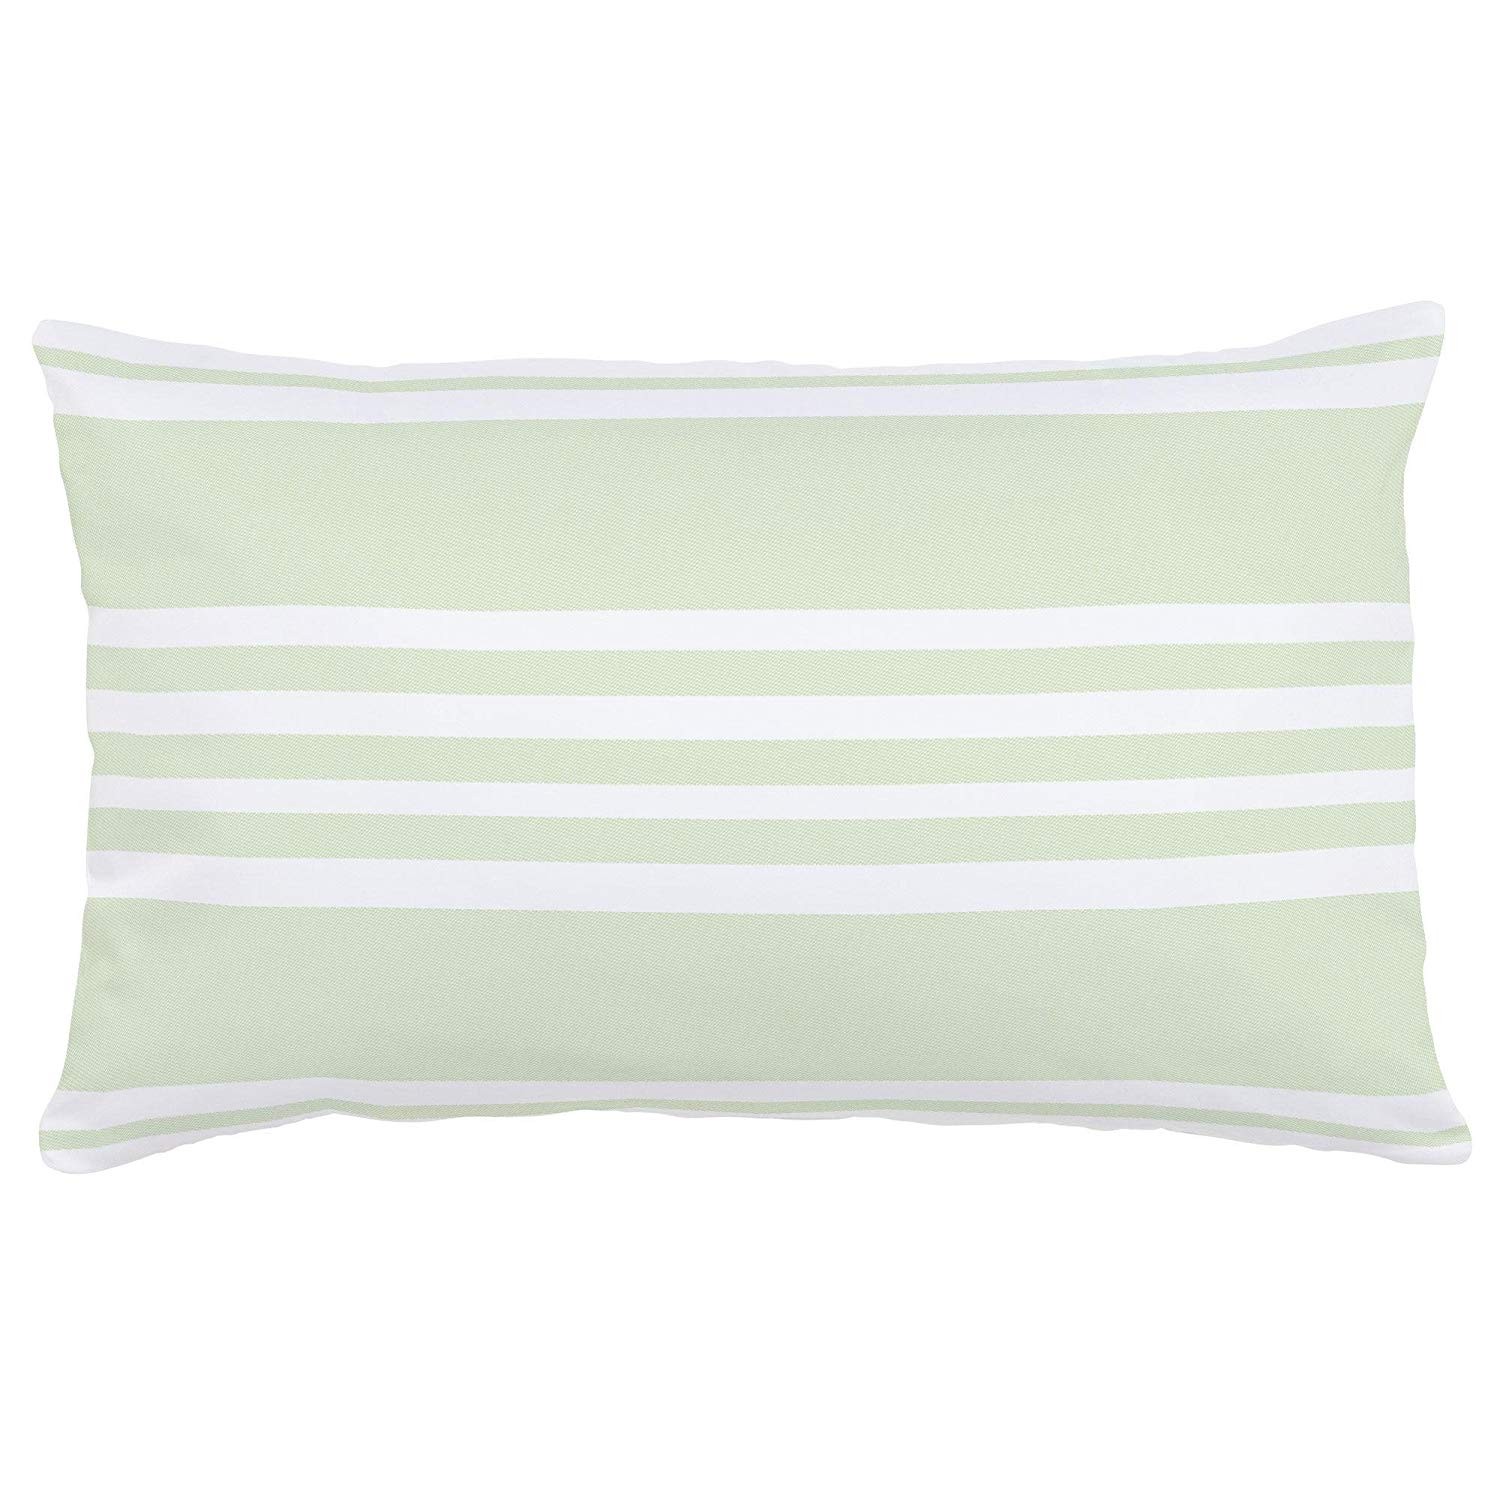 Carousel Designs Pastel Green Summer Stripe Lumbar Pillow - Organic 100% Cotton Lumbar Pillow Cover + Insert - Made in the USA